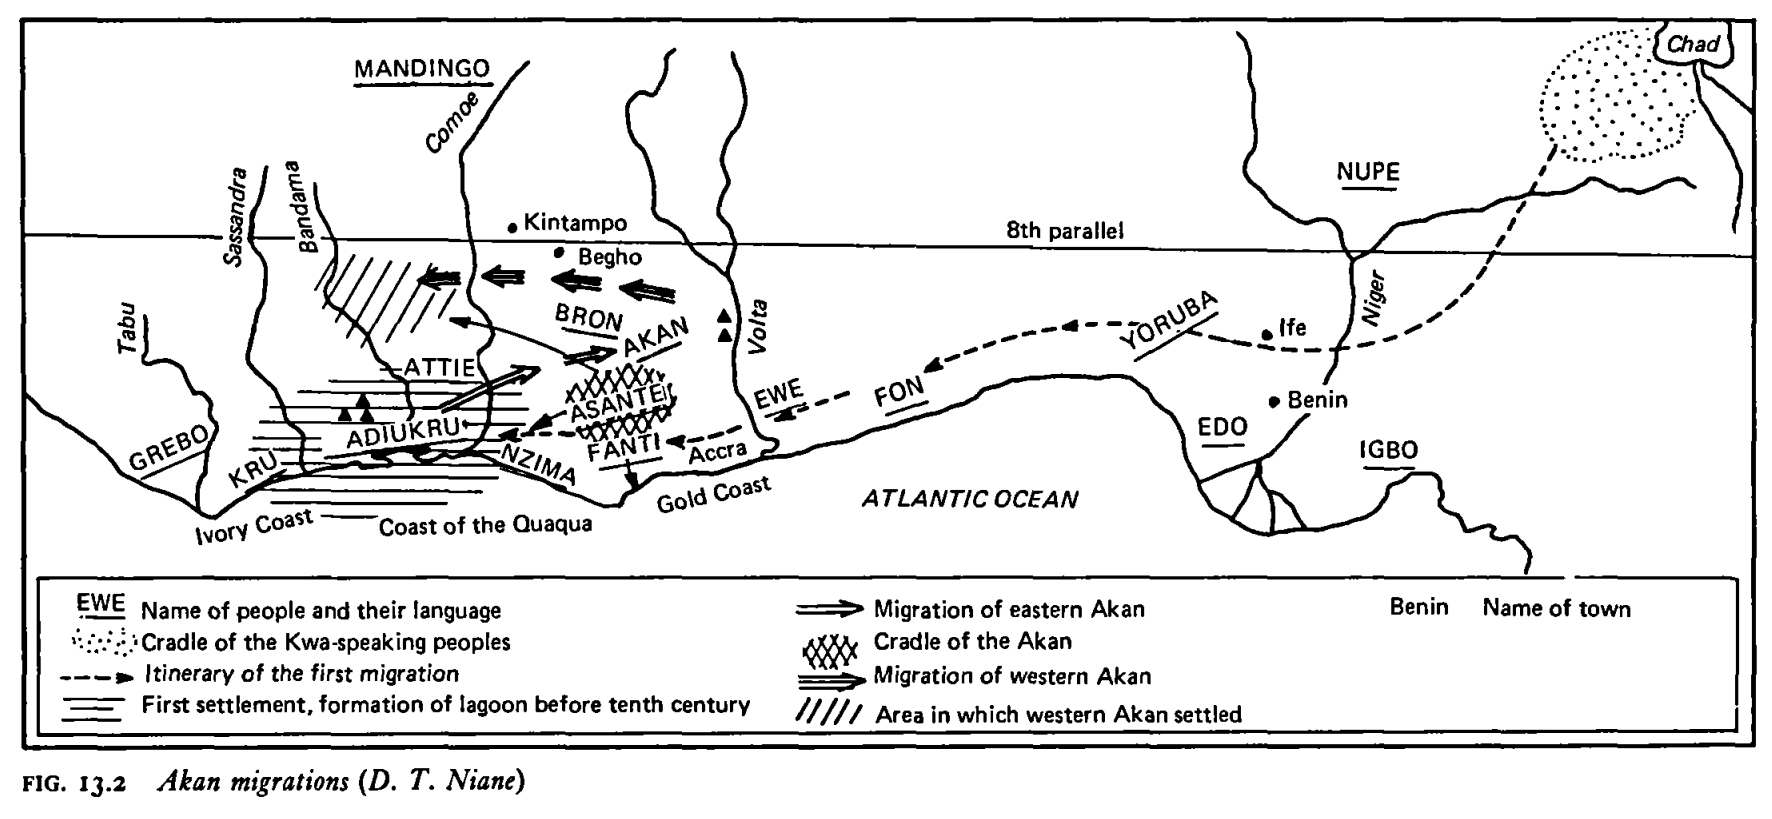 Map of the Akan migrations, showing the first migration to be from the  regions around